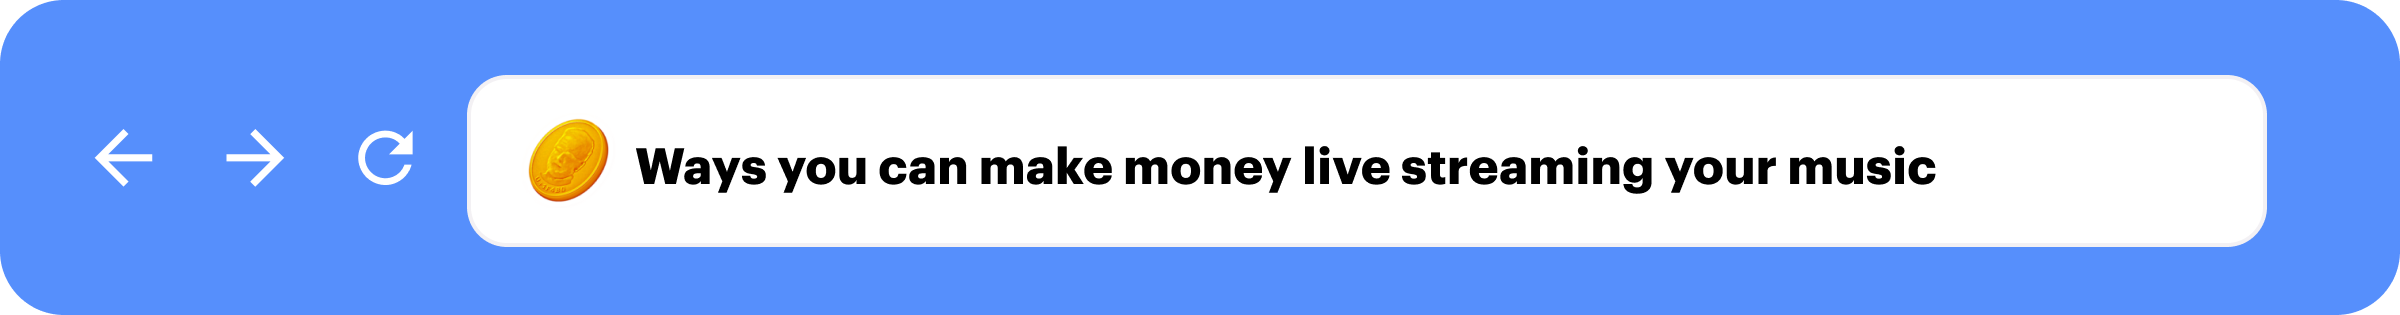 Ways you can make money live streaming your music